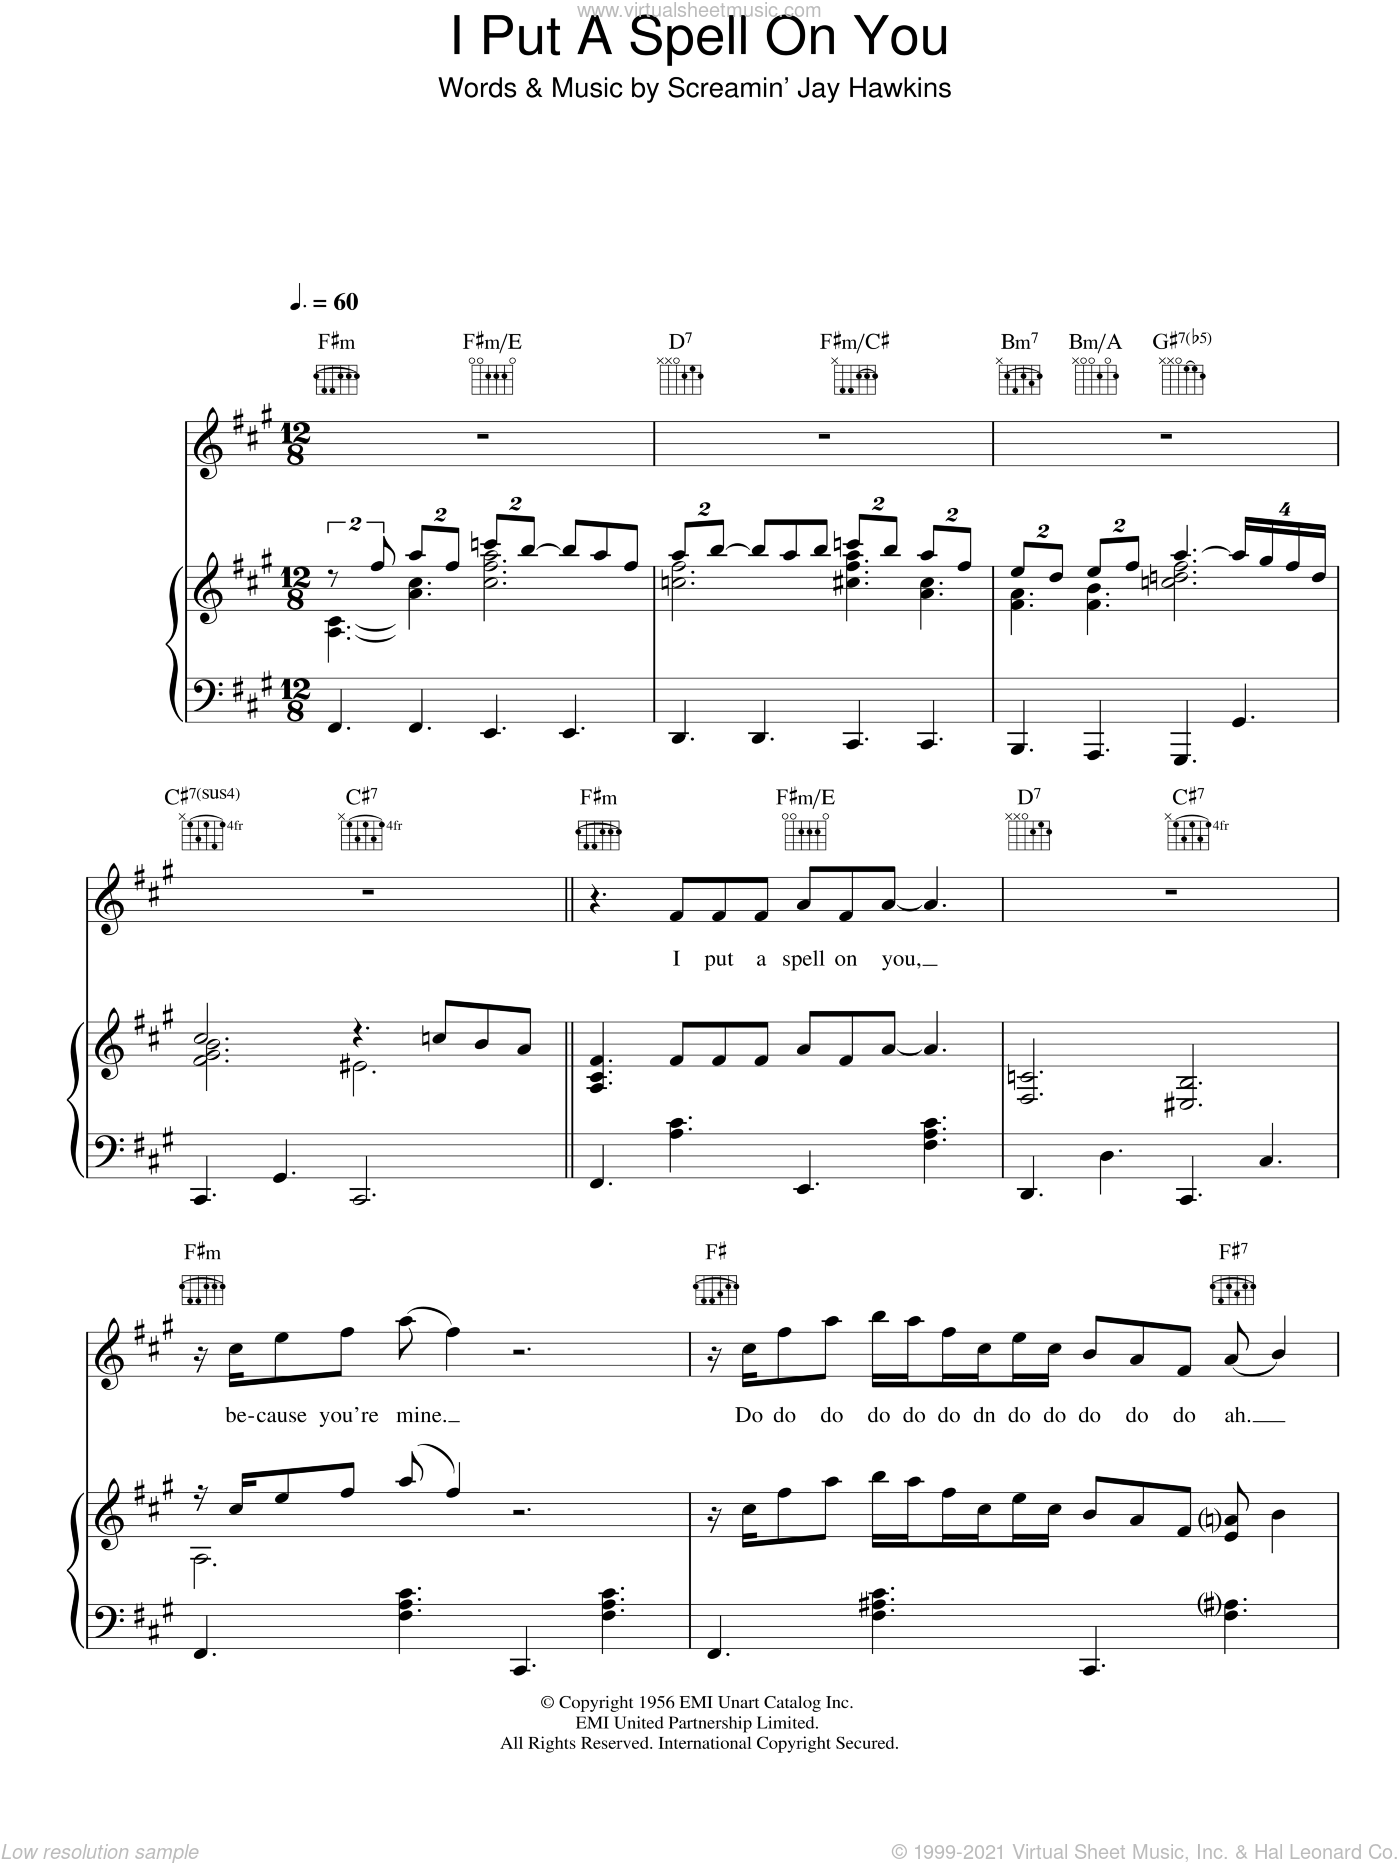 I Put A Spell On You sheet music for voice, piano or guitar by Screamin' Jay Hawkins